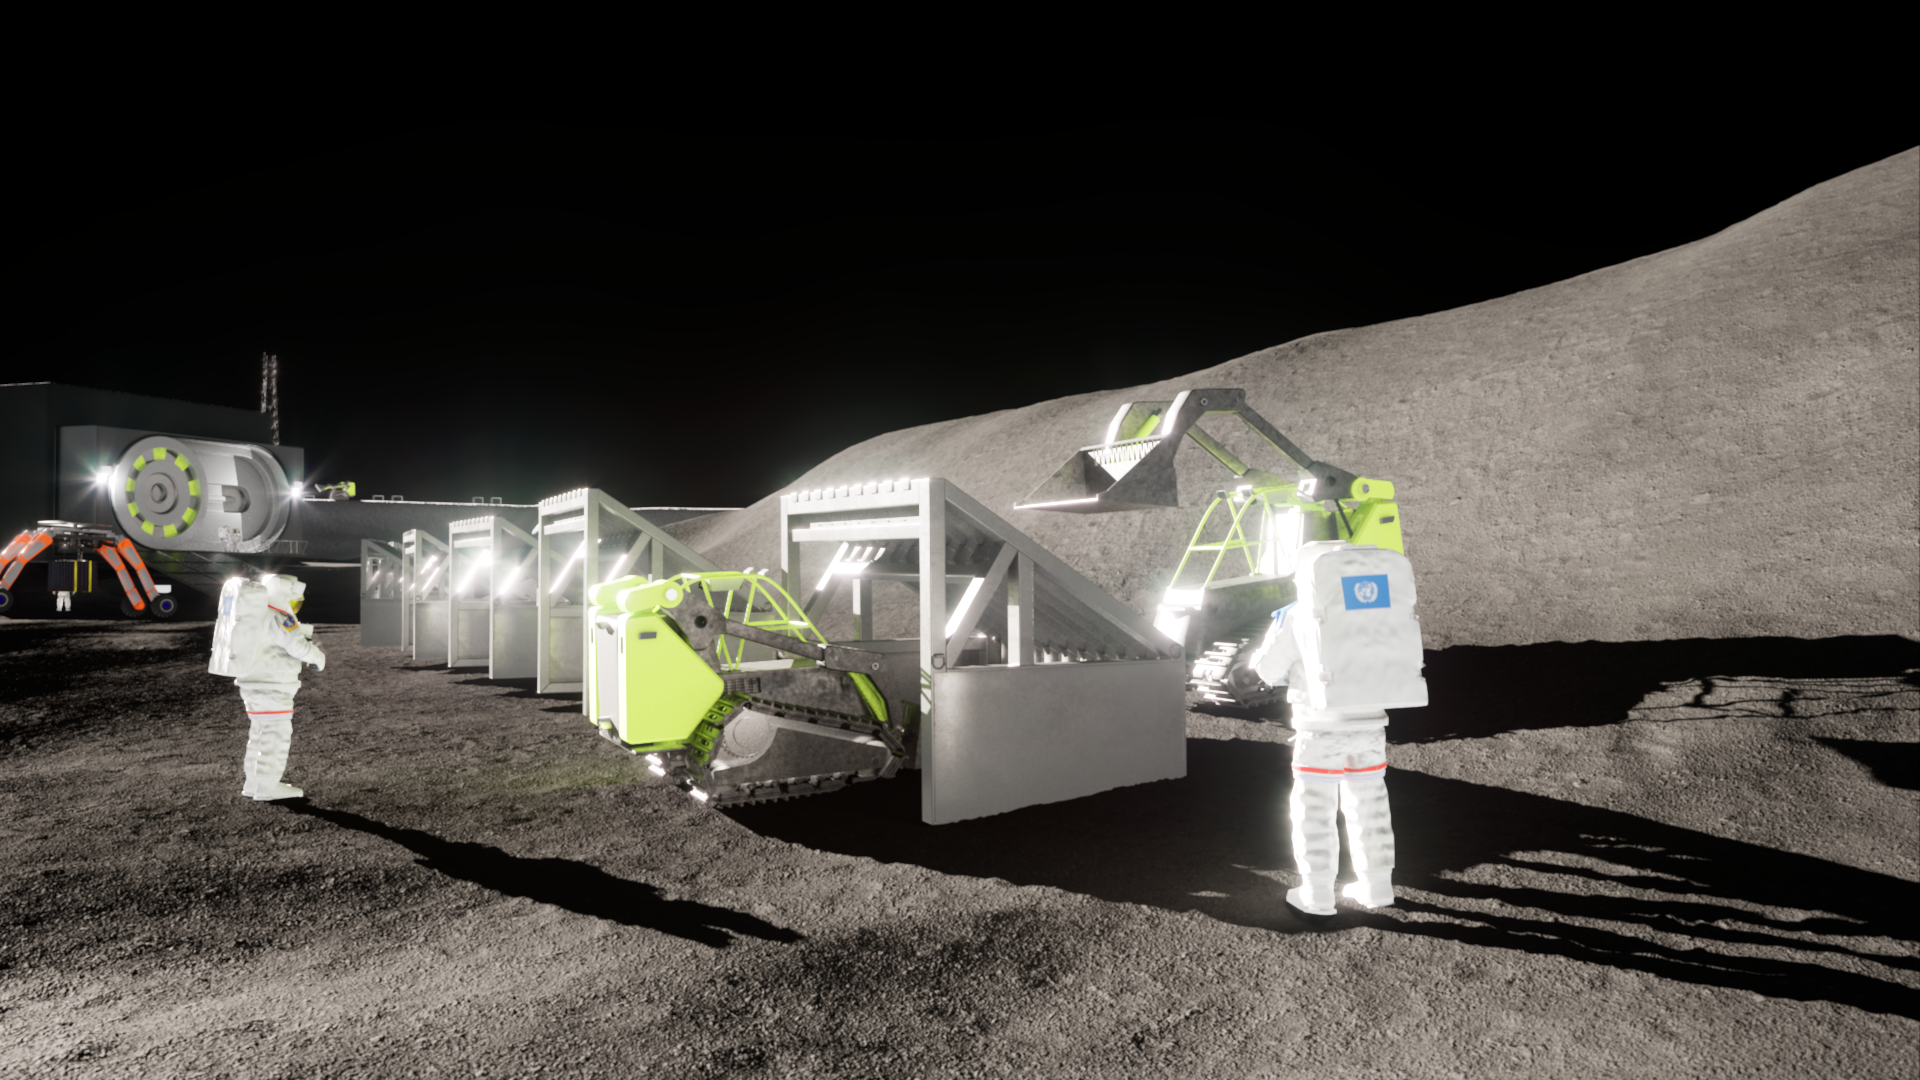 Moon Base Design Contest